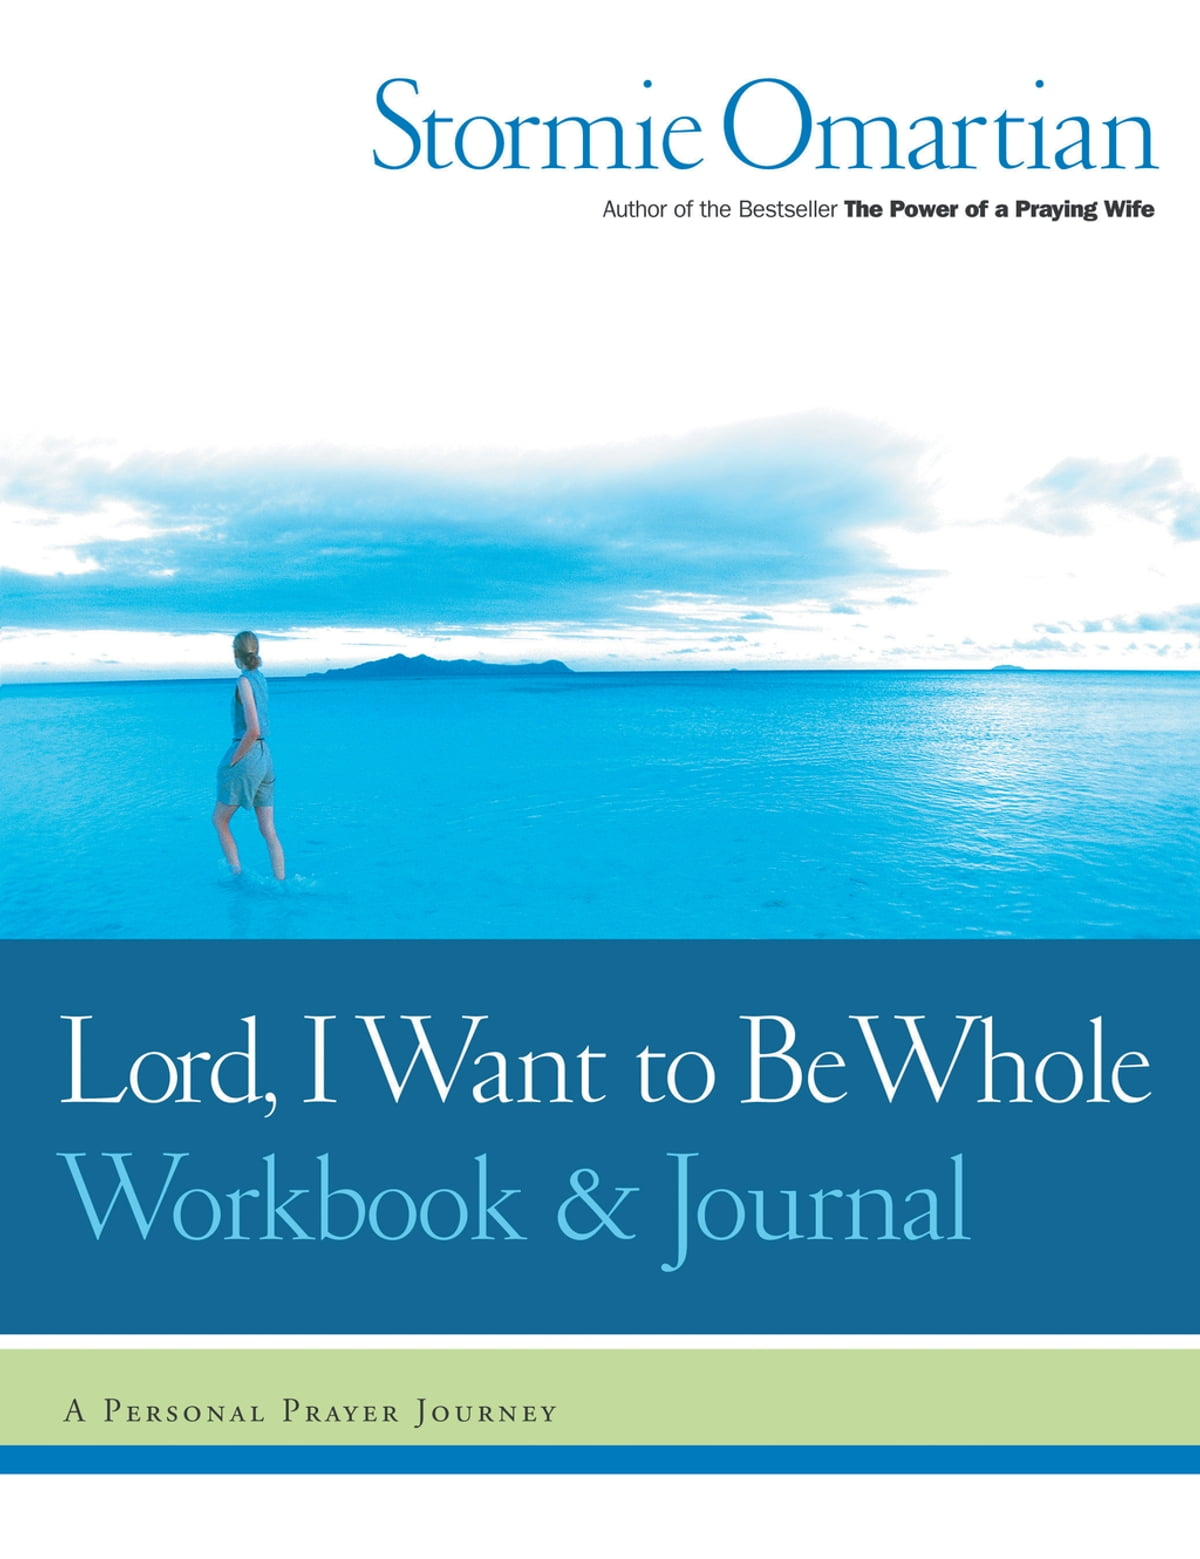 Workbooks prayer workbook : Lord, I Want to Be Whole Workbook and Journal eBook di Stormie ...